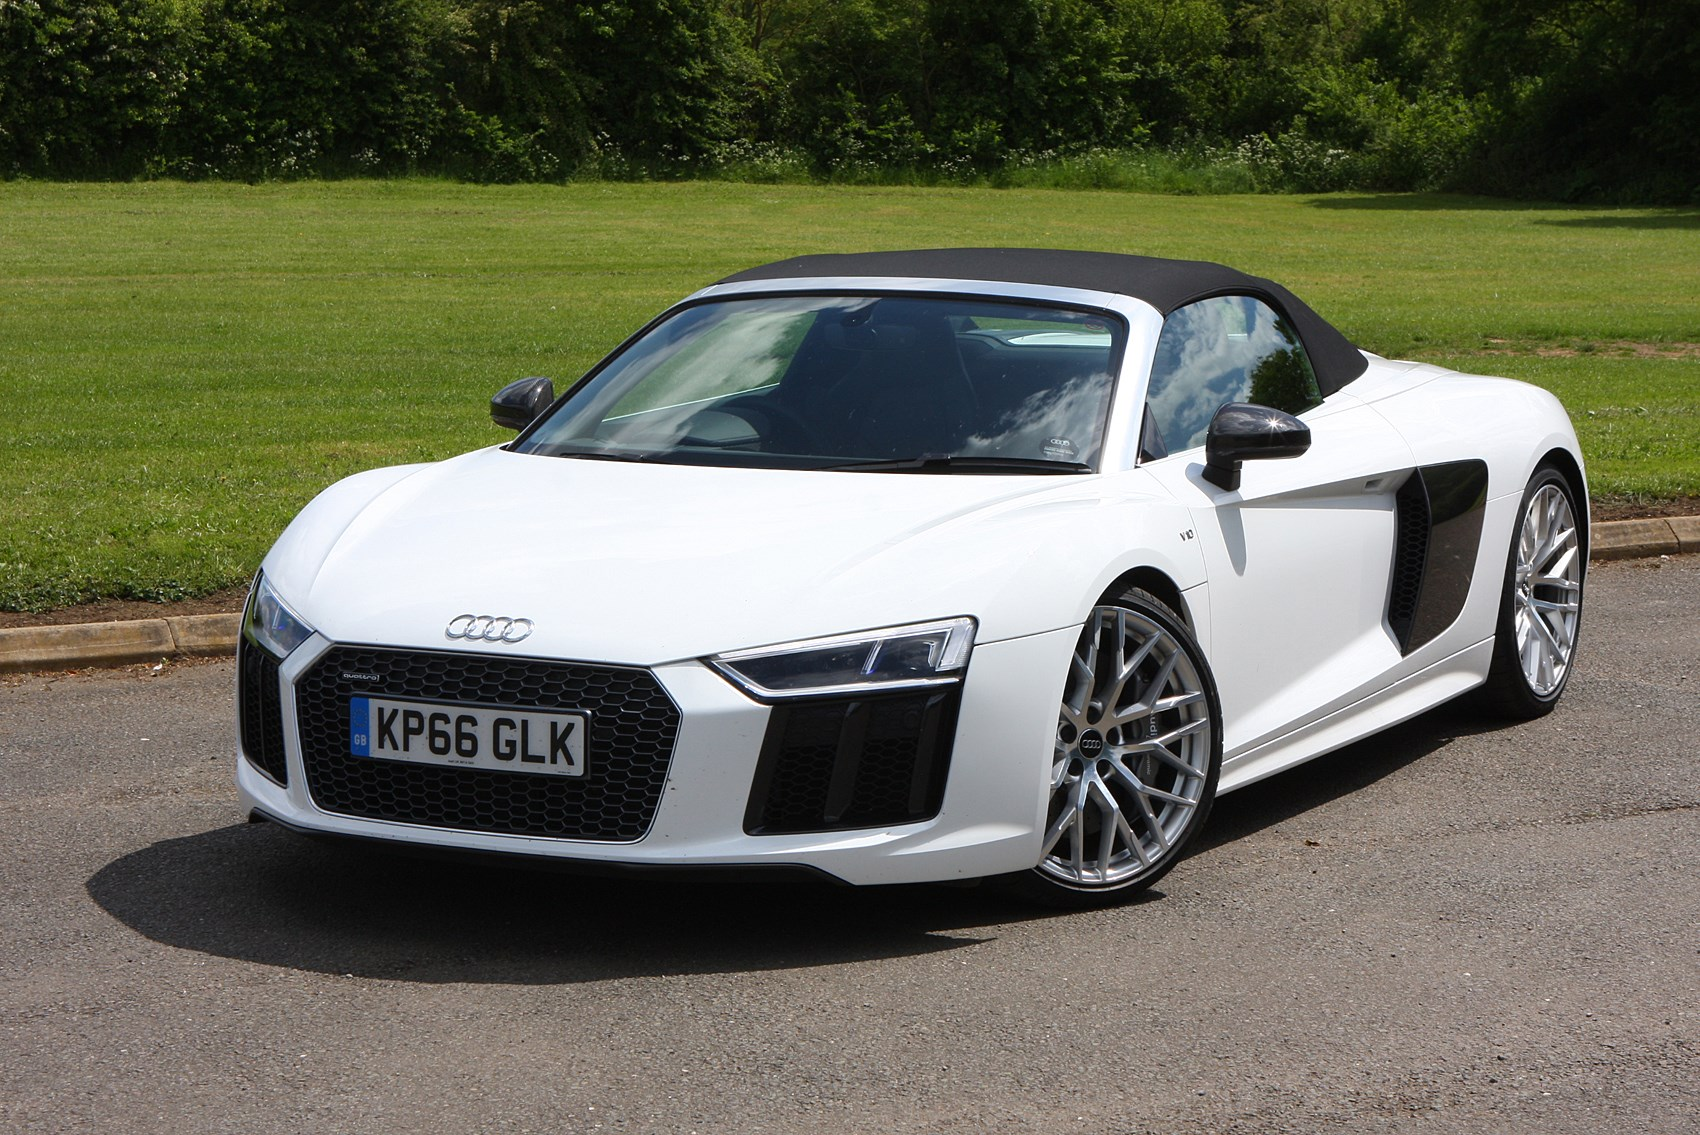 How Much Does An Audi R8 Cost How Much Does An Audi R8